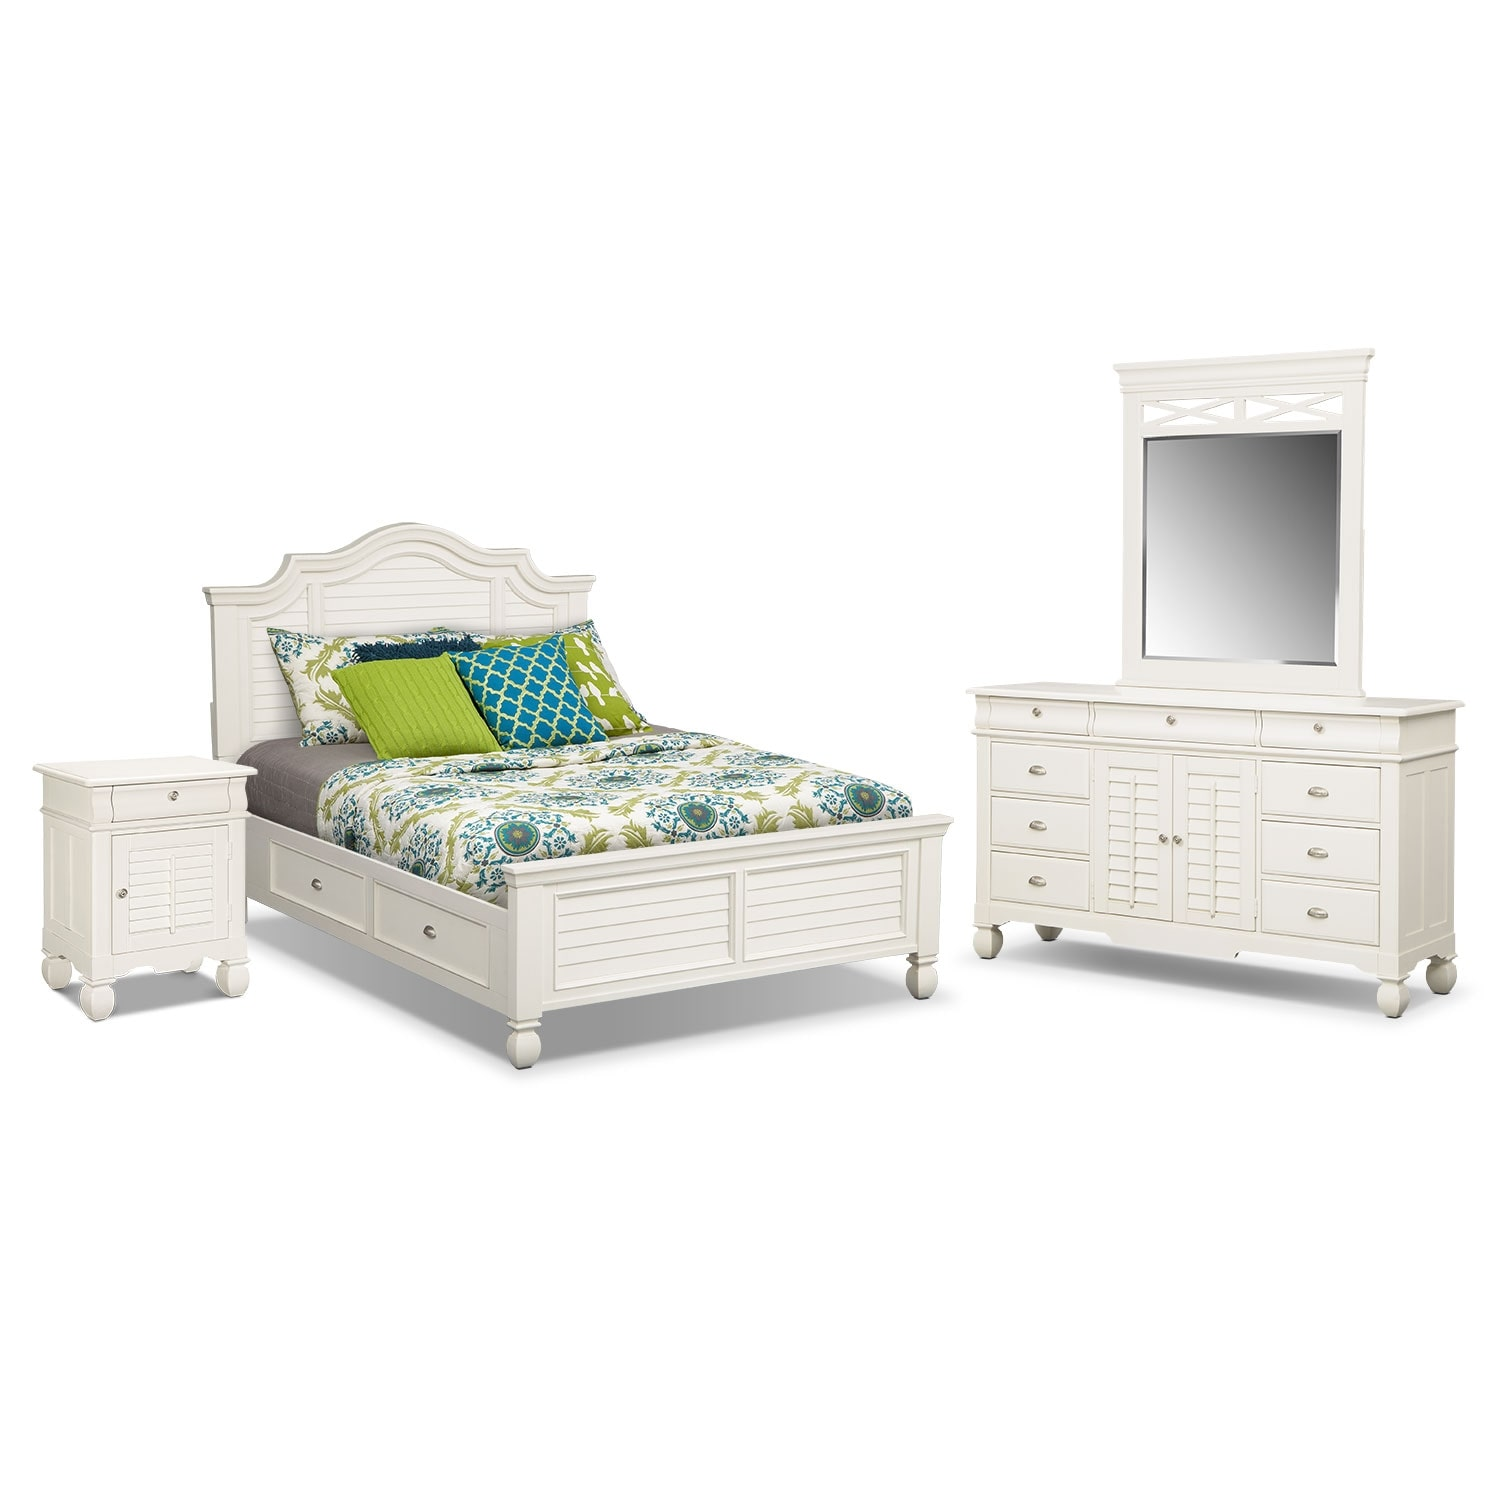 Bedroom Furniture - Plantation Cove White Storage 6 Pc. King Storage Bedroom